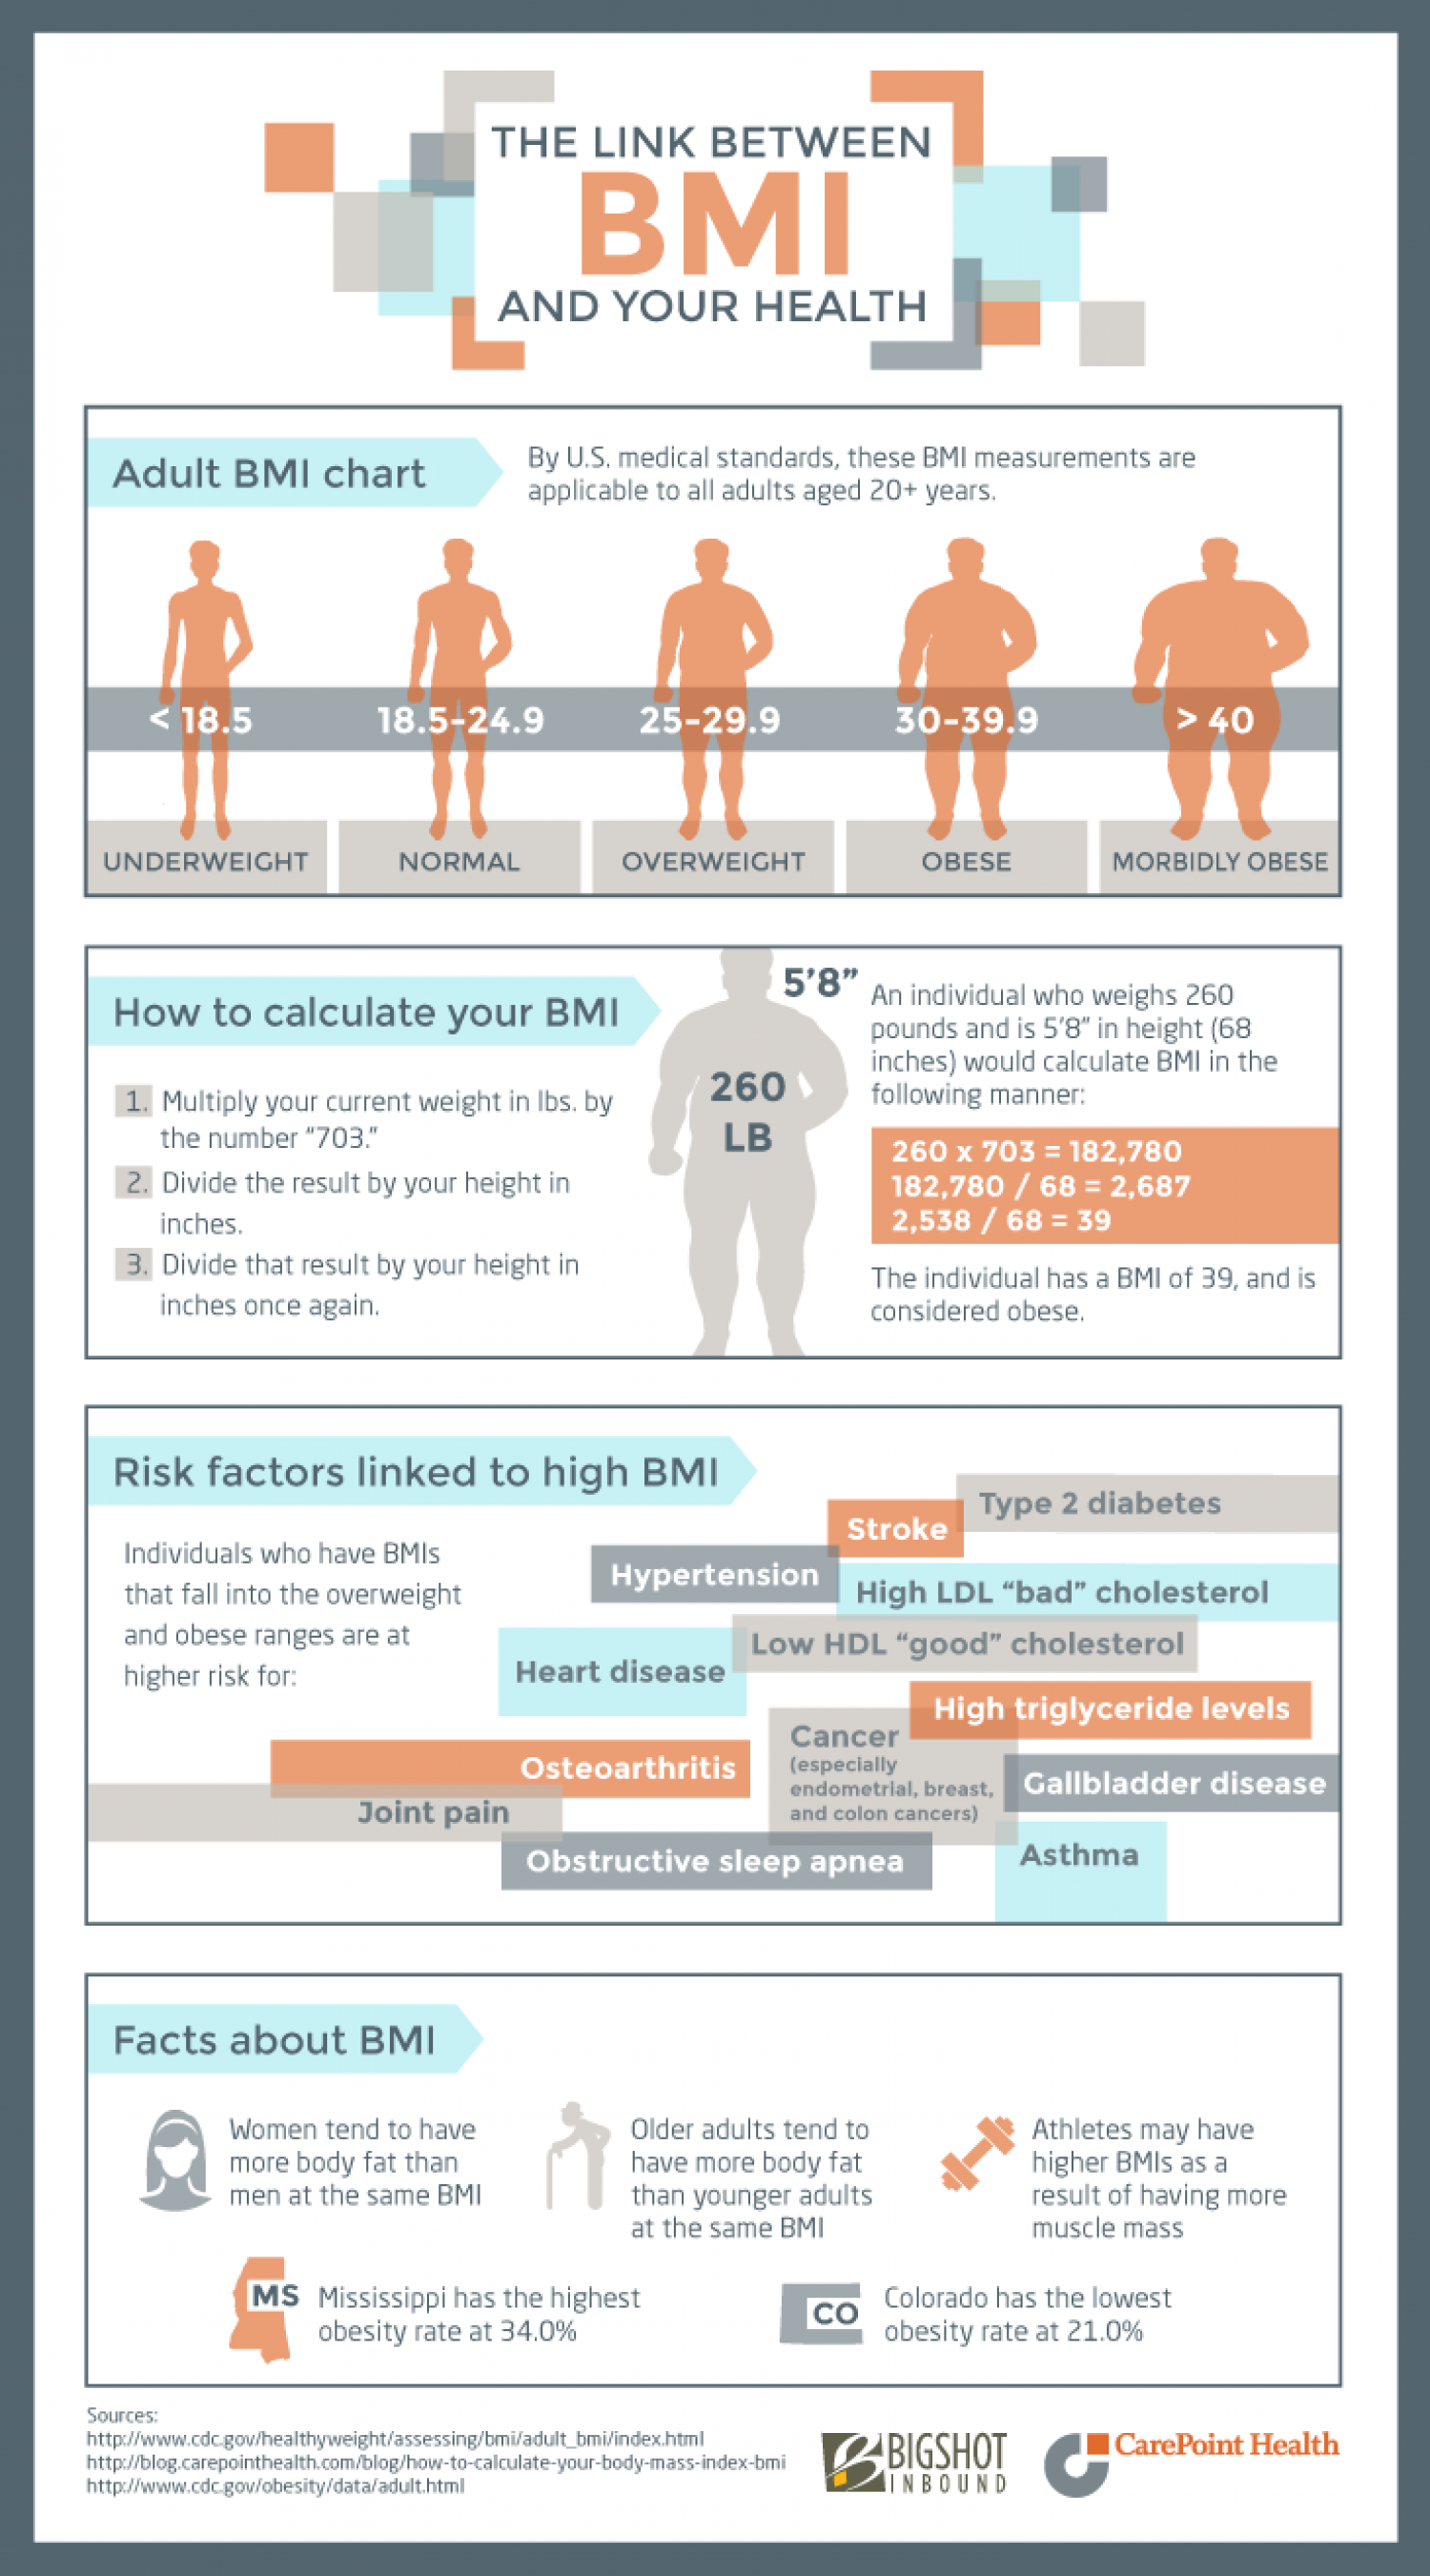 The link between bmi and your health visual the link between bmi and your health infographic geenschuldenfo Image collections